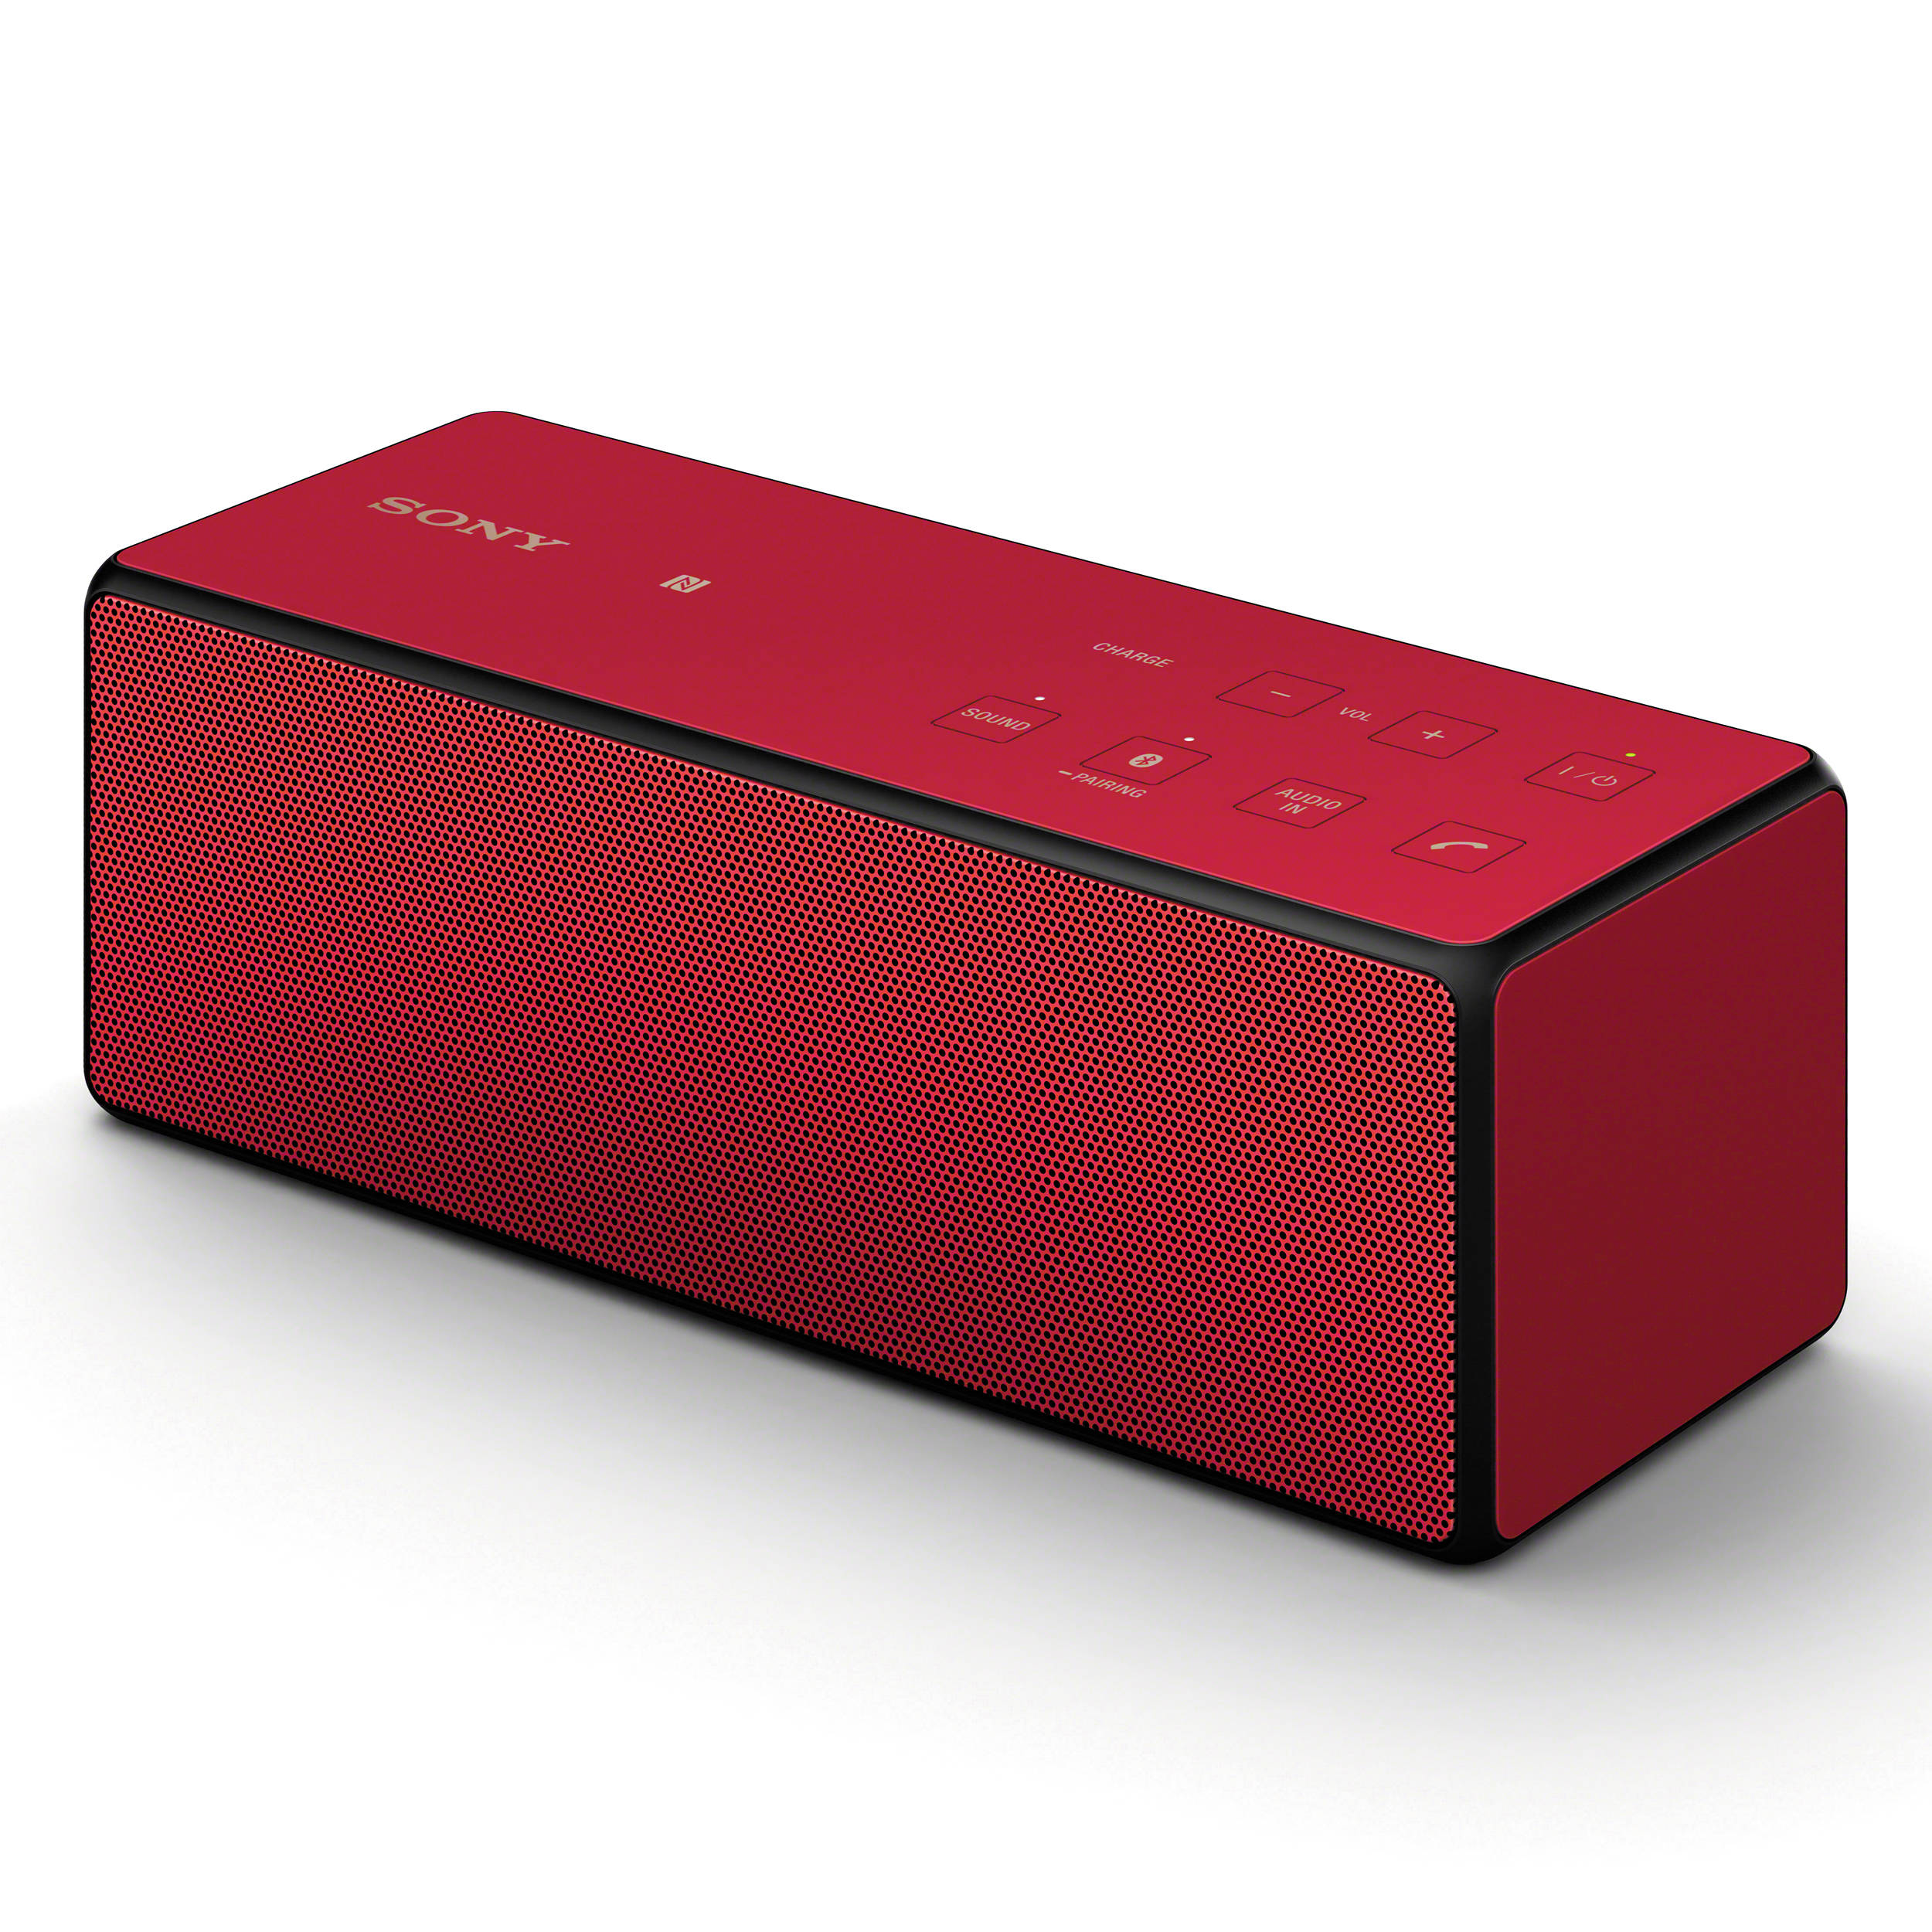 Bluetooth Speaker Portable Sony: Sony Portable Bluetooth Speaker (Red) SRSX3/RED B&H Photo Video